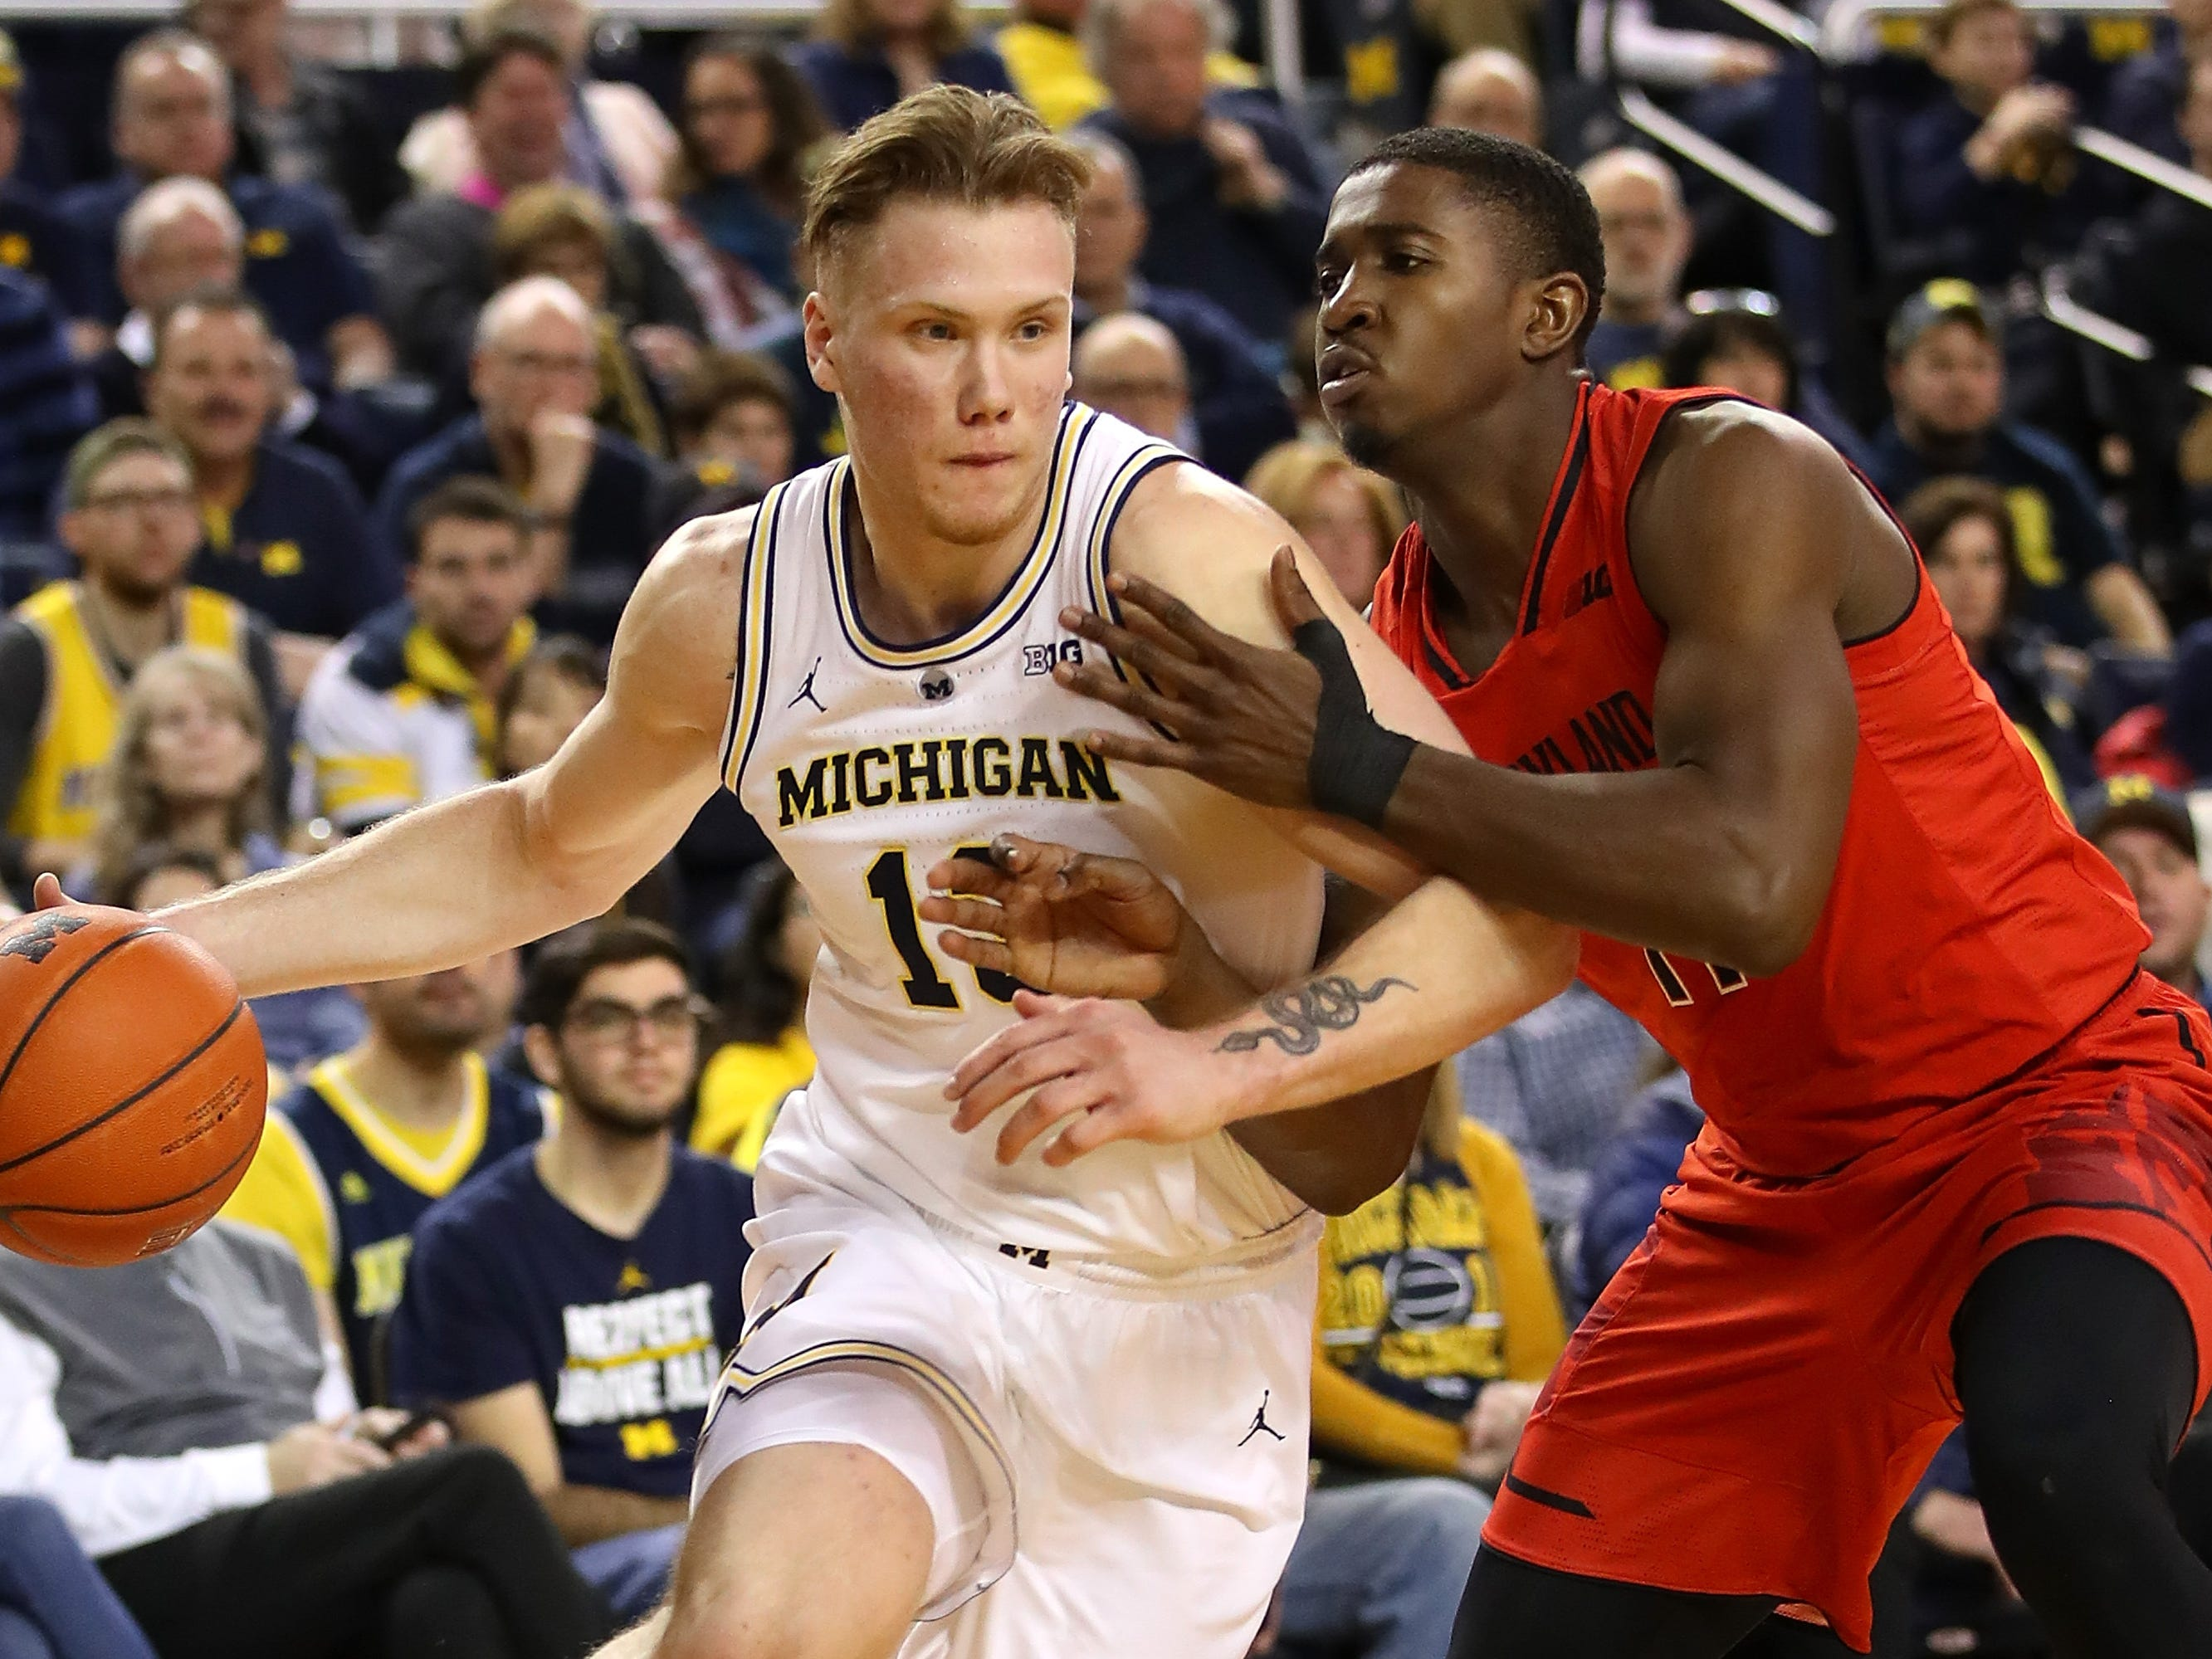 Michigan's Ignas Brazdeikis drives around Maryland's Darryl Morsell during the first period at Crisler Arena on Feb. 16, 2019 in Ann Arbor.